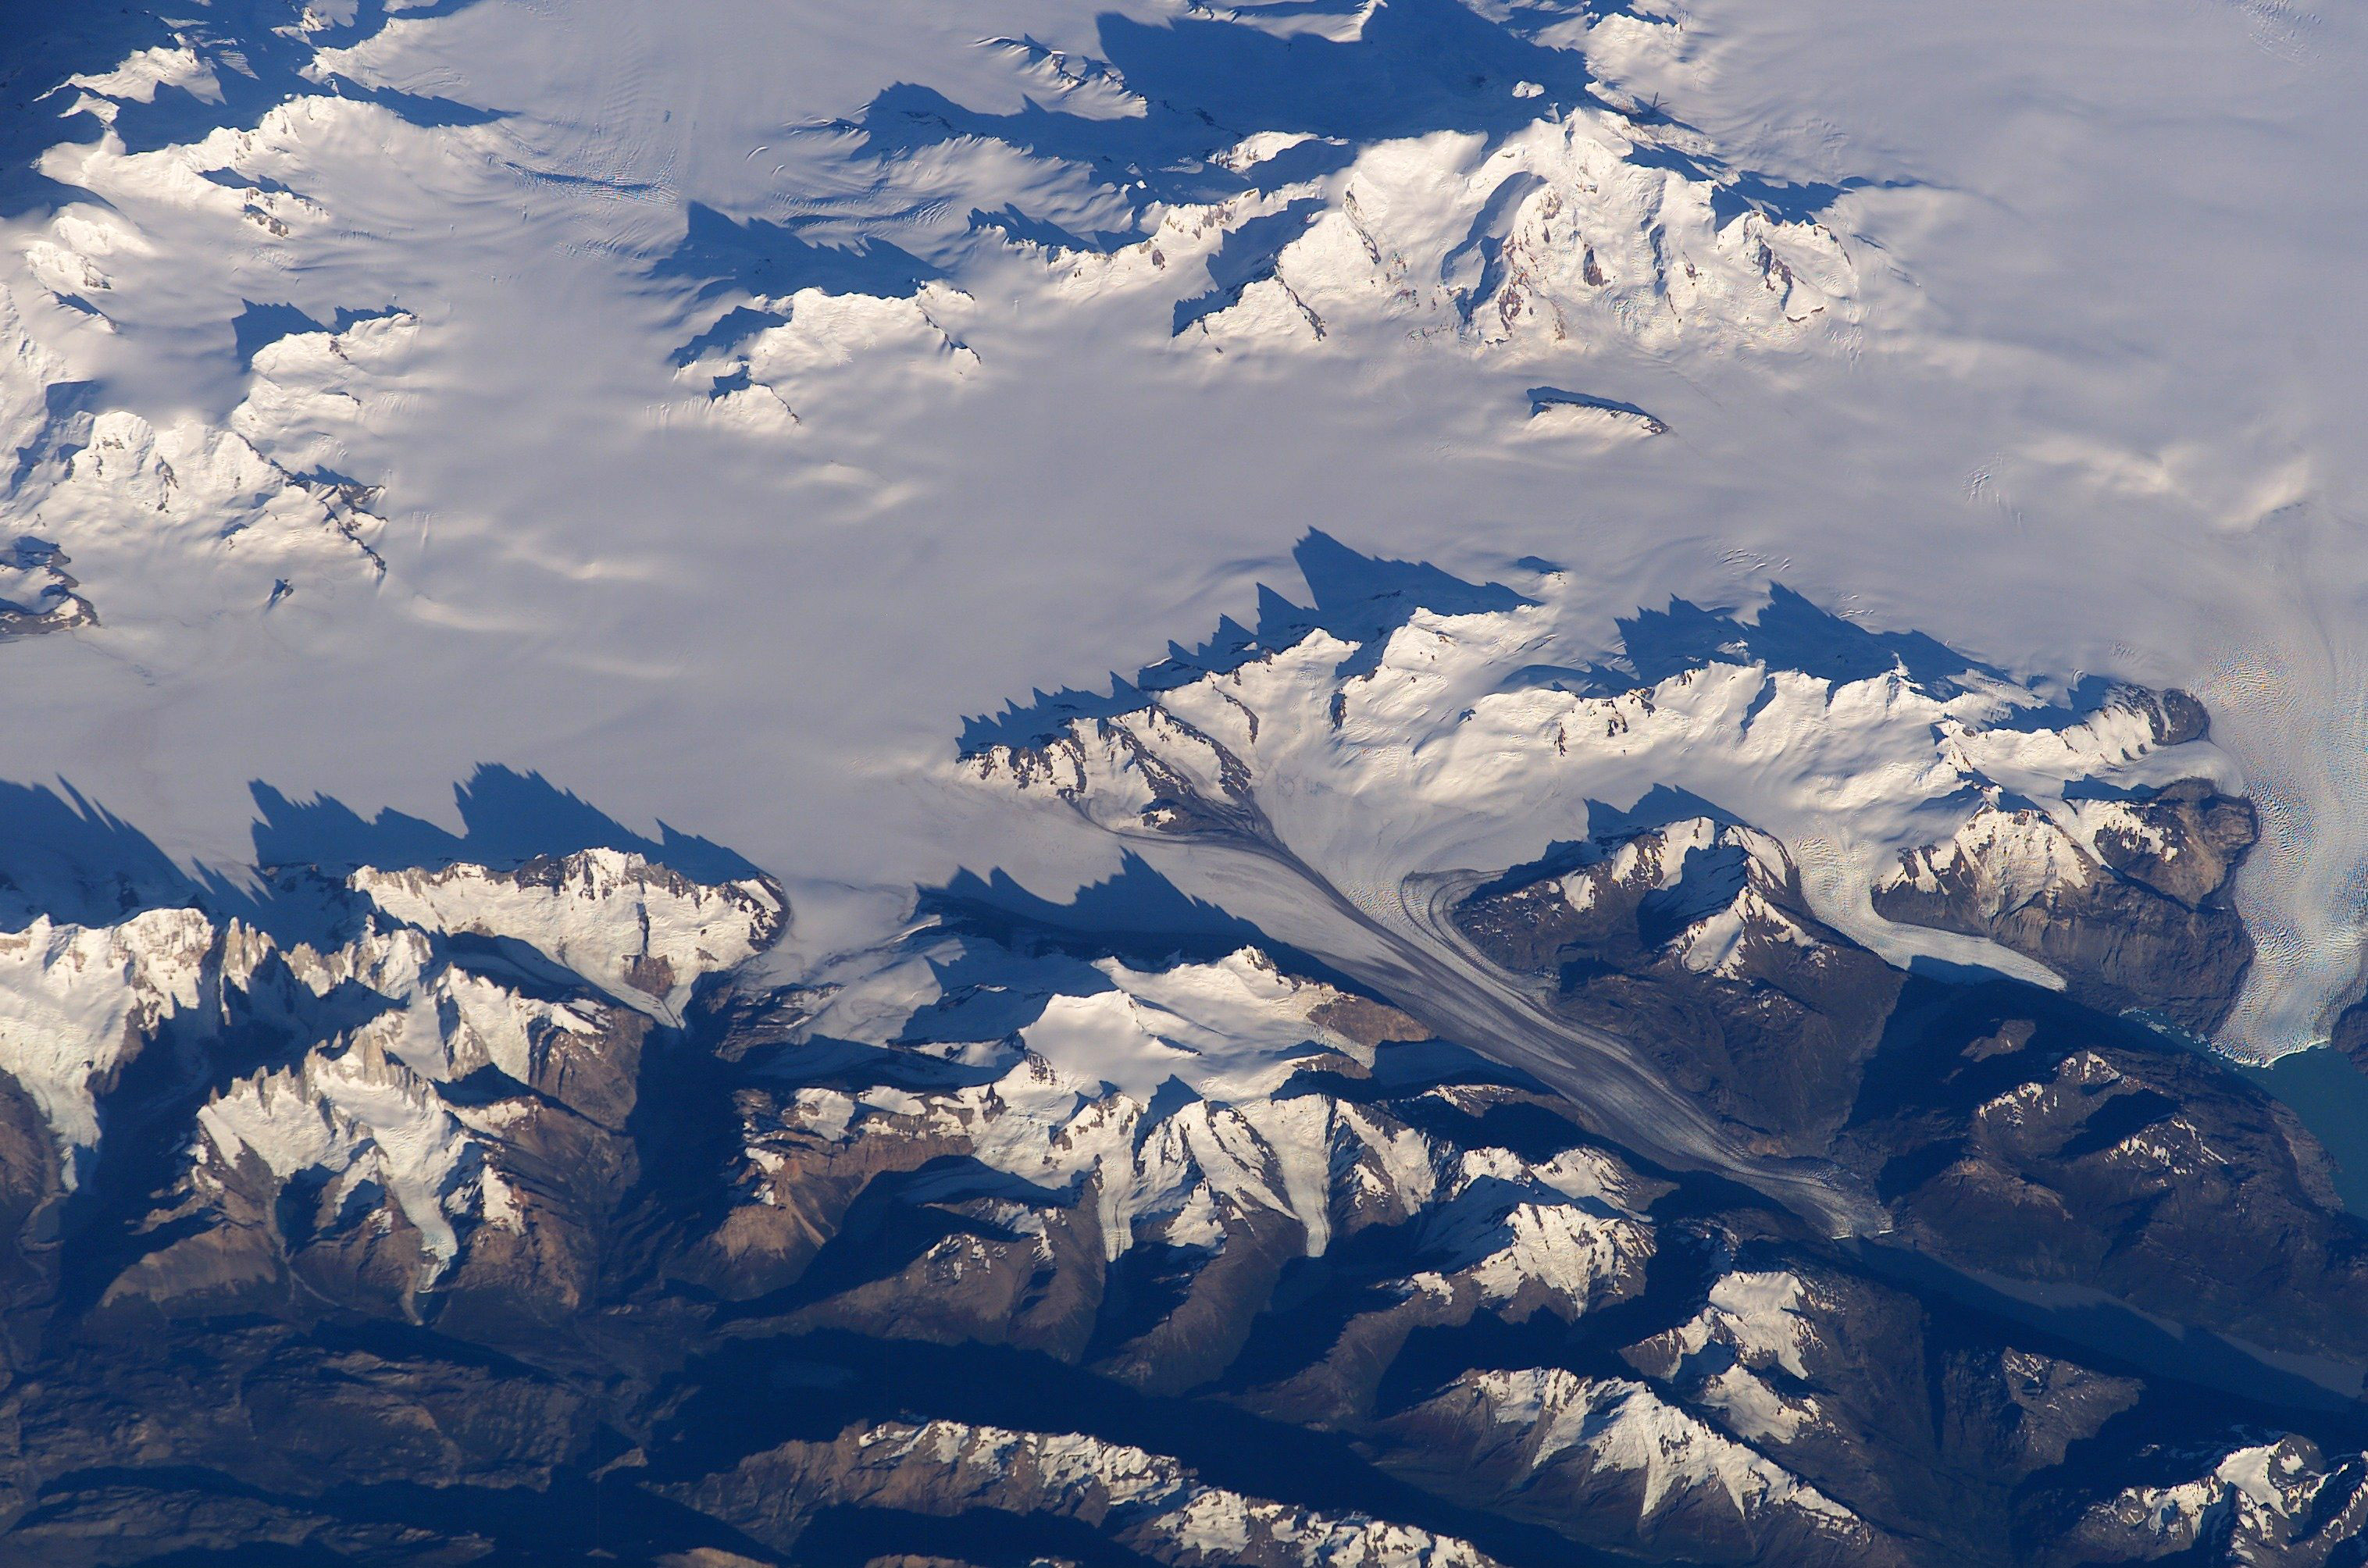 Southern Ice Fields in Chile image - Free stock photo